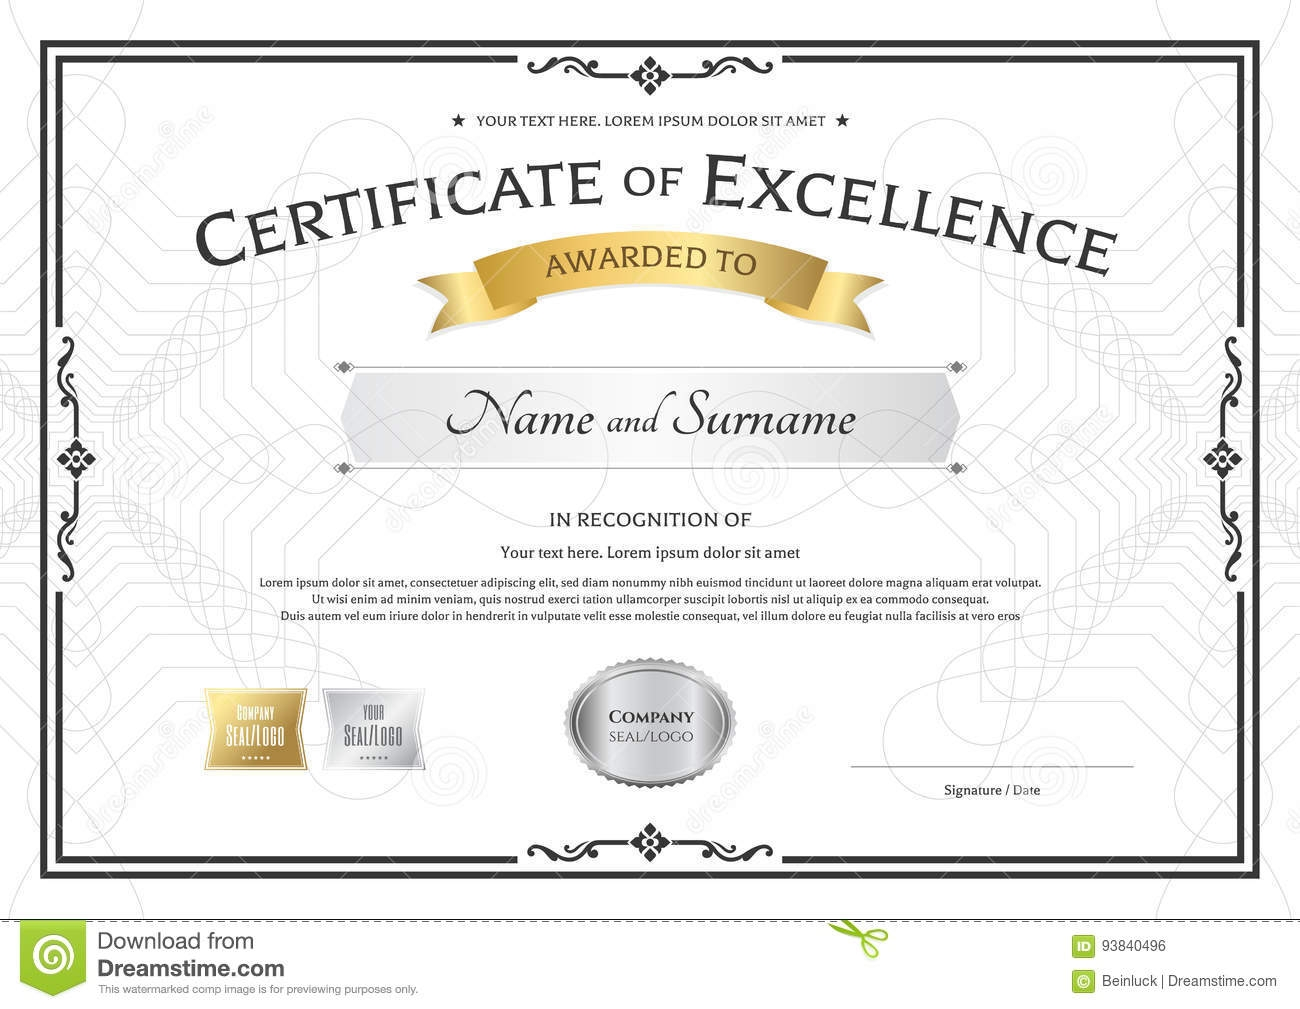 Certificate Of Excellence Template With Gold Award Ribbon On Abs